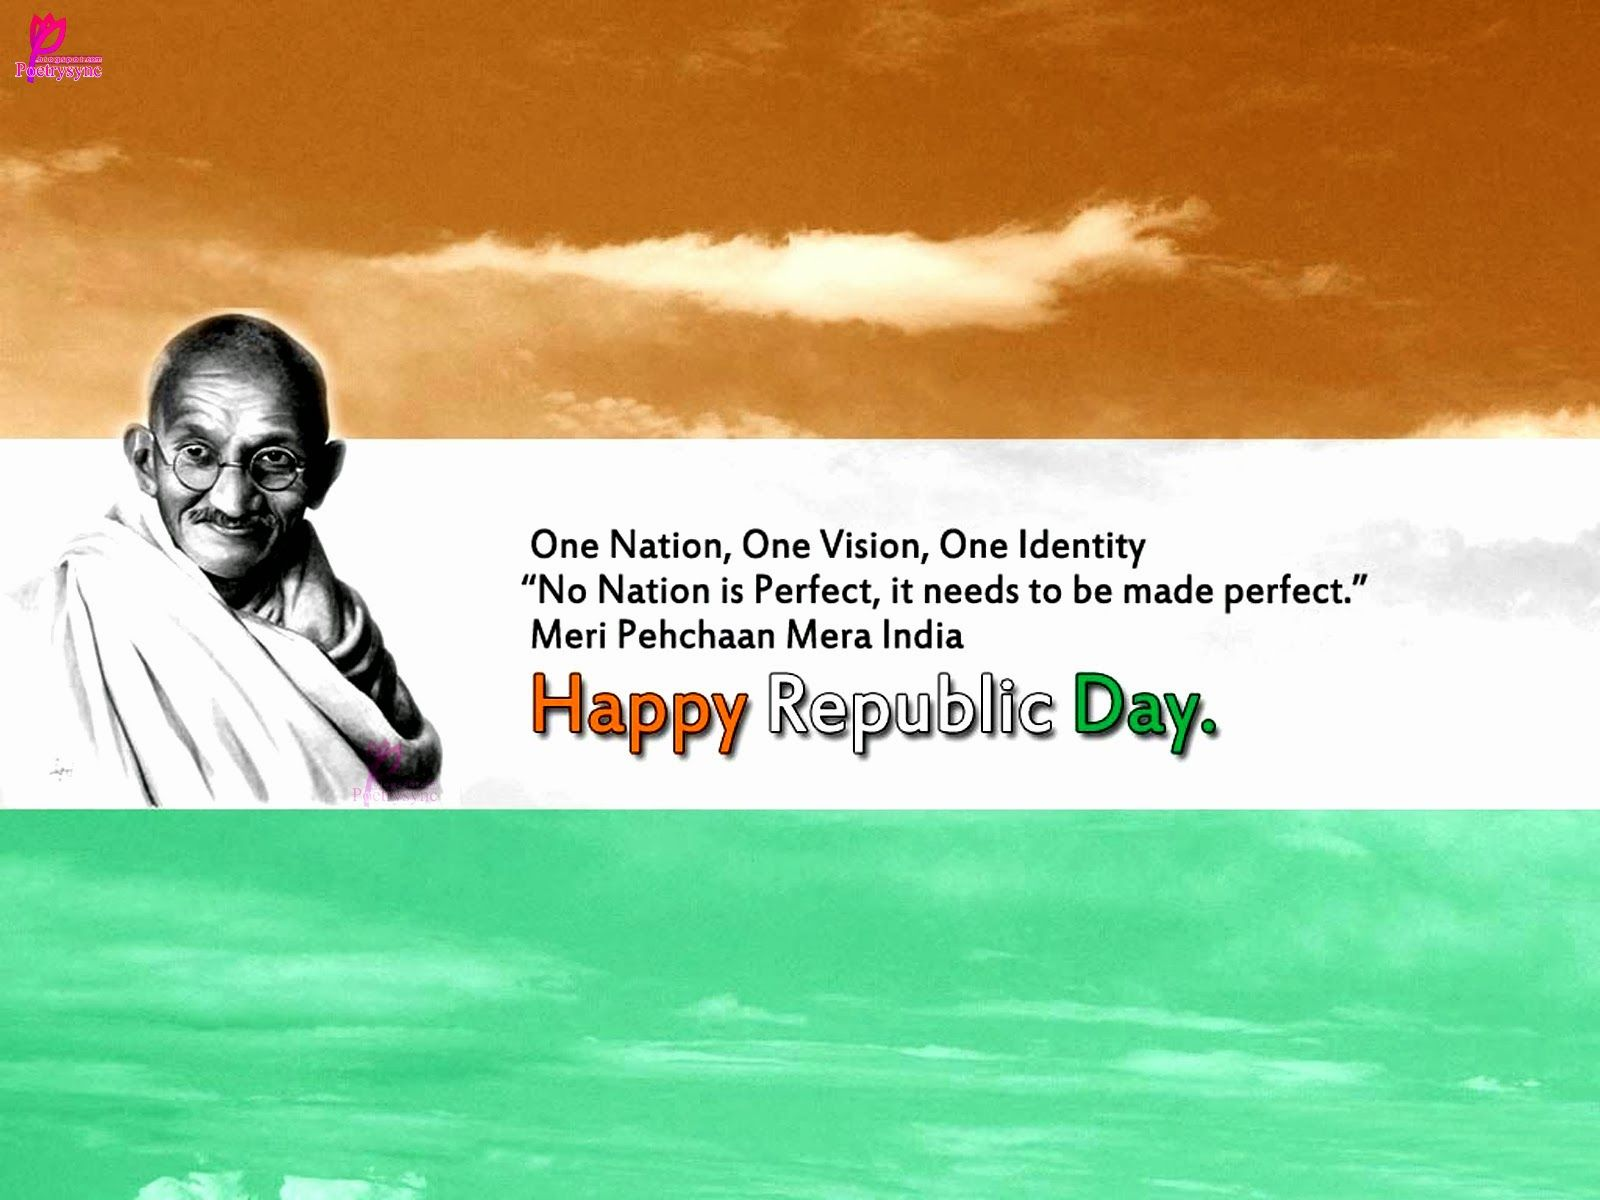 Poetry Republic Day Of India Quotes For Messages English With Wishes Images Quotes On Republic Day Independence Day Quotes Republic Day Speech Happy republic day quotes 26 january